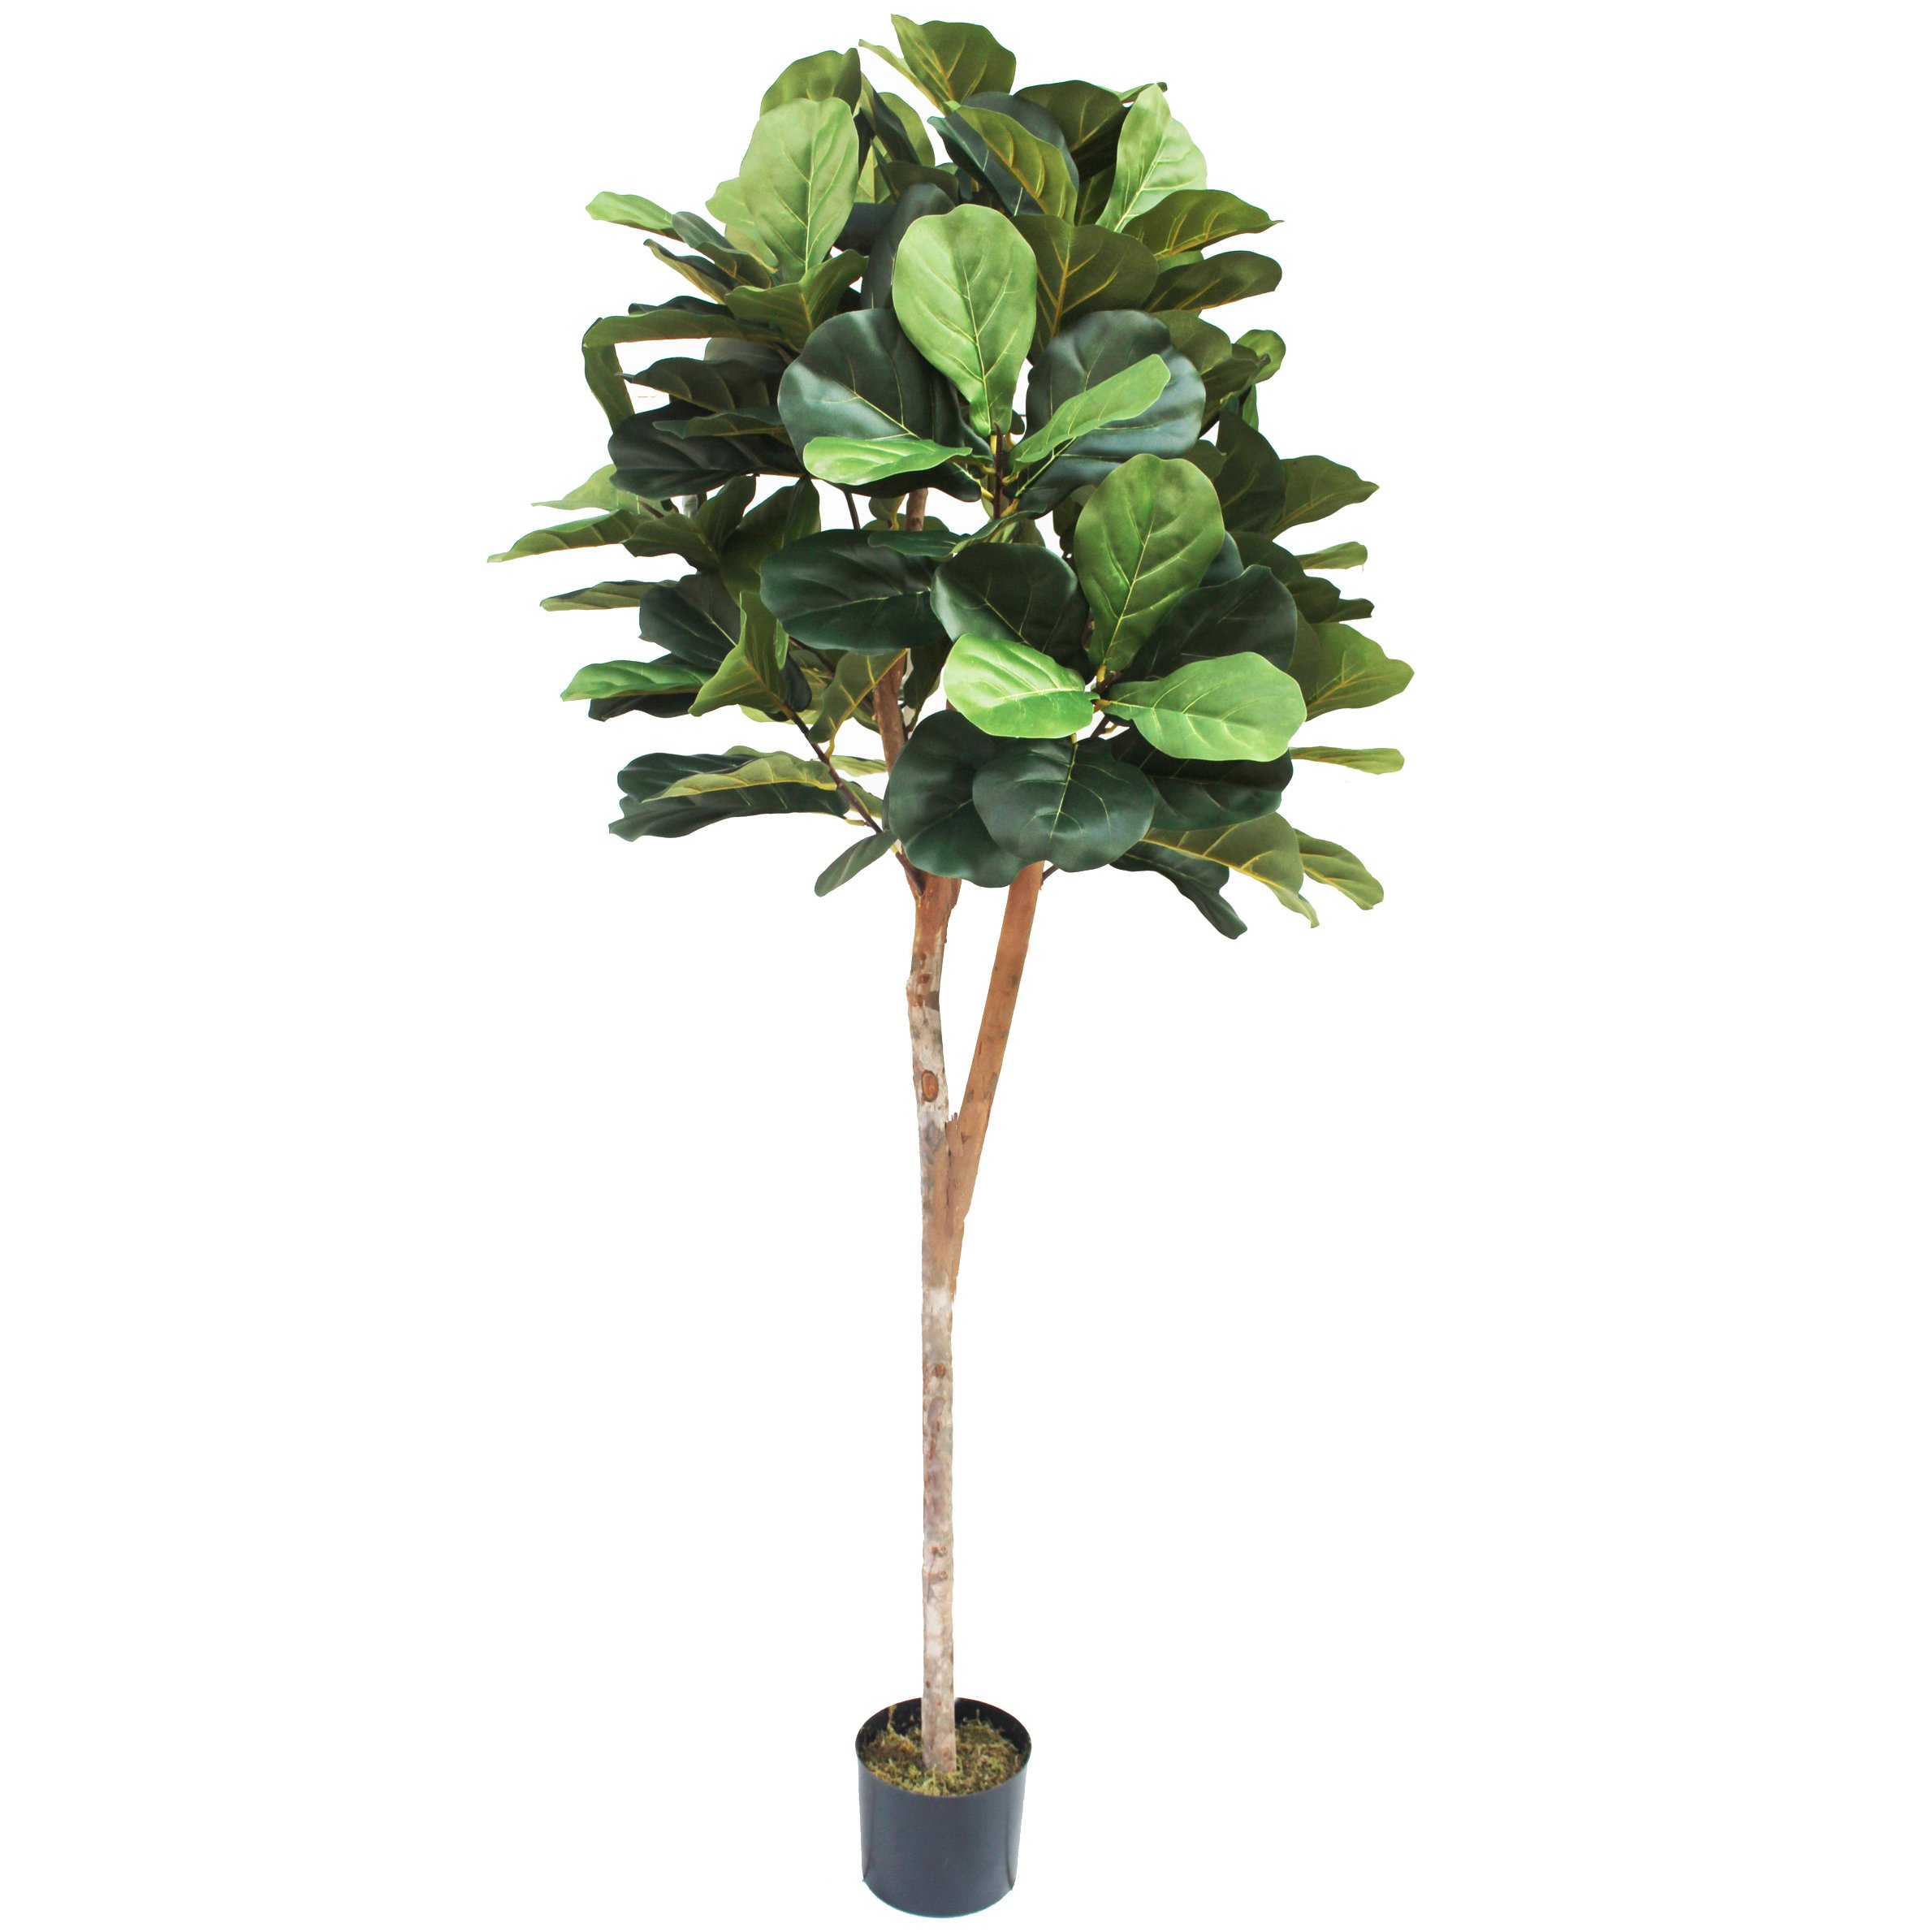 6' Fiddle Leaf Fig Ball-Shaped Topiary Silk Tree w/Pot -Green